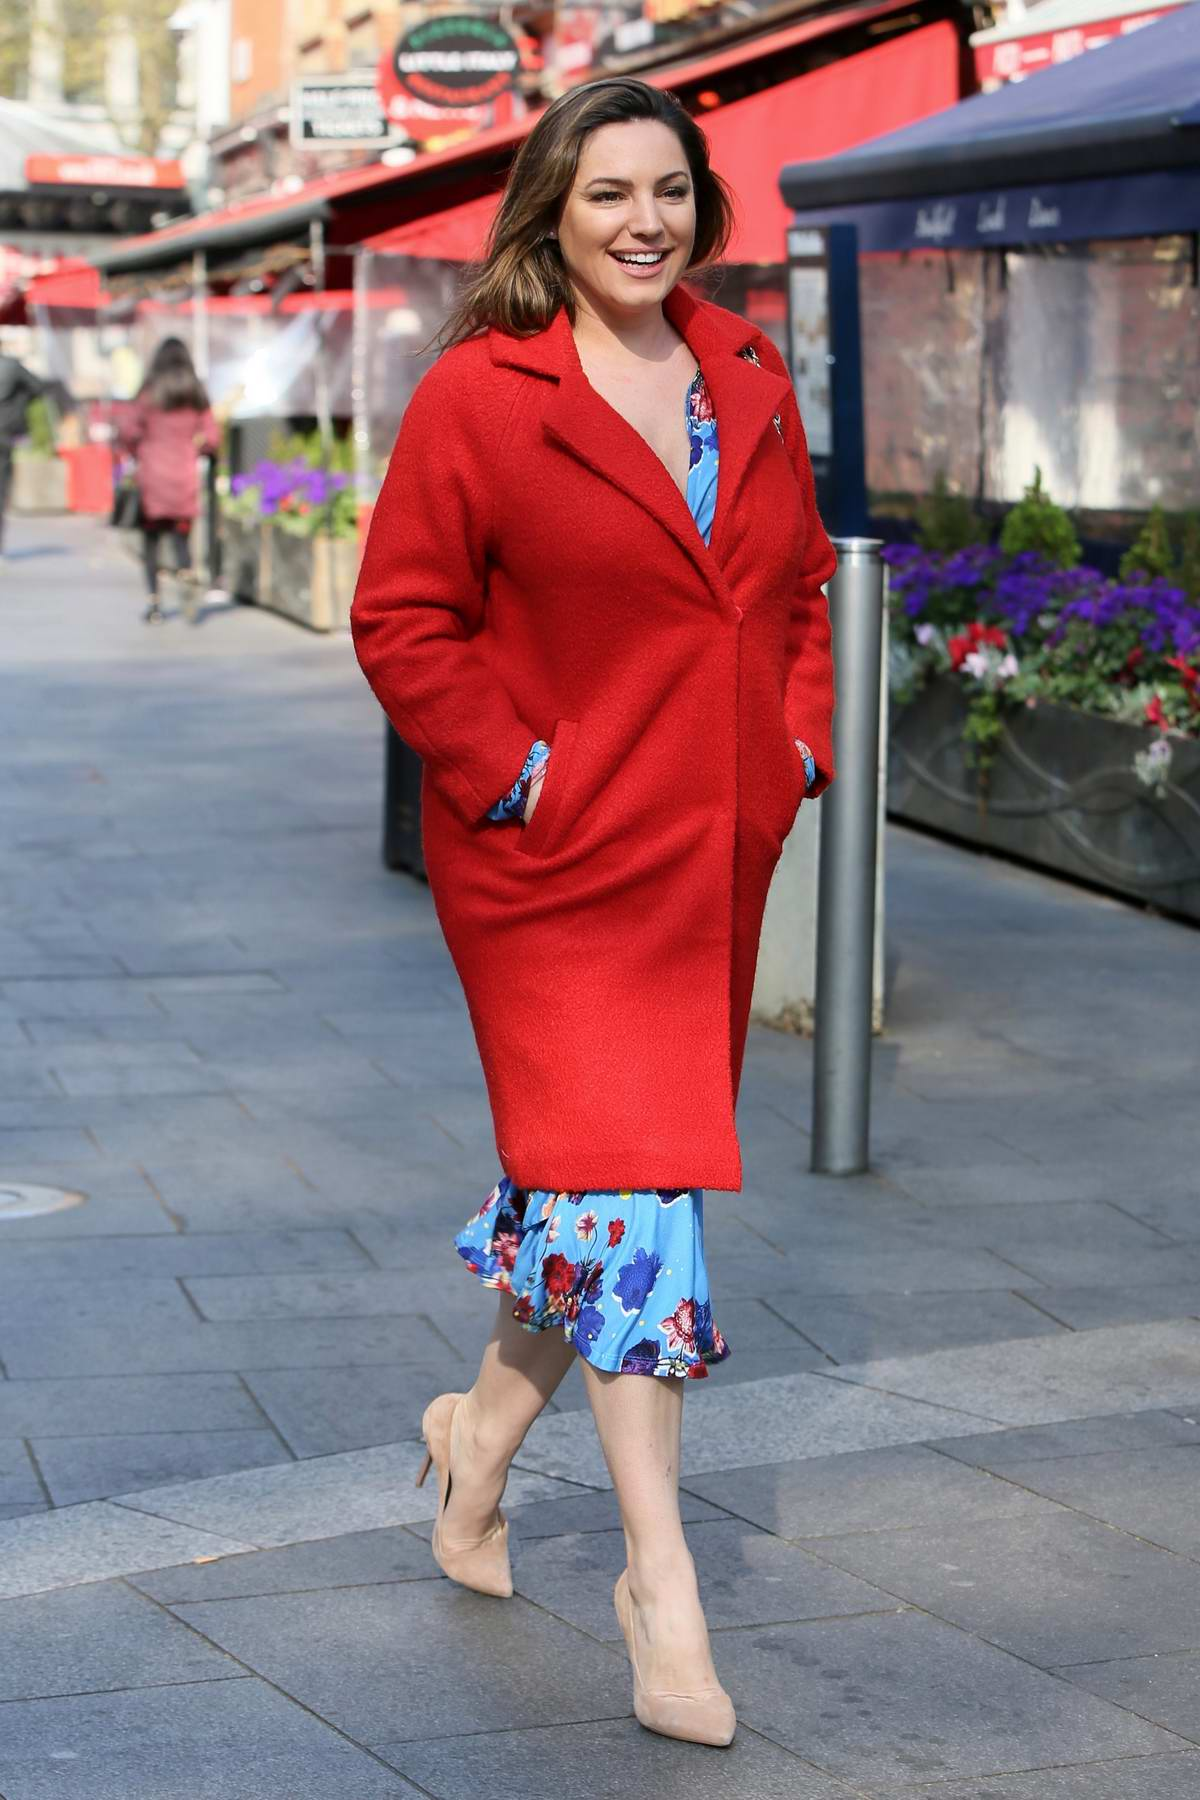 Kelly Brook is all smiles as she leaves Global Radio studios in a red coat over blue floral dress in London, UK